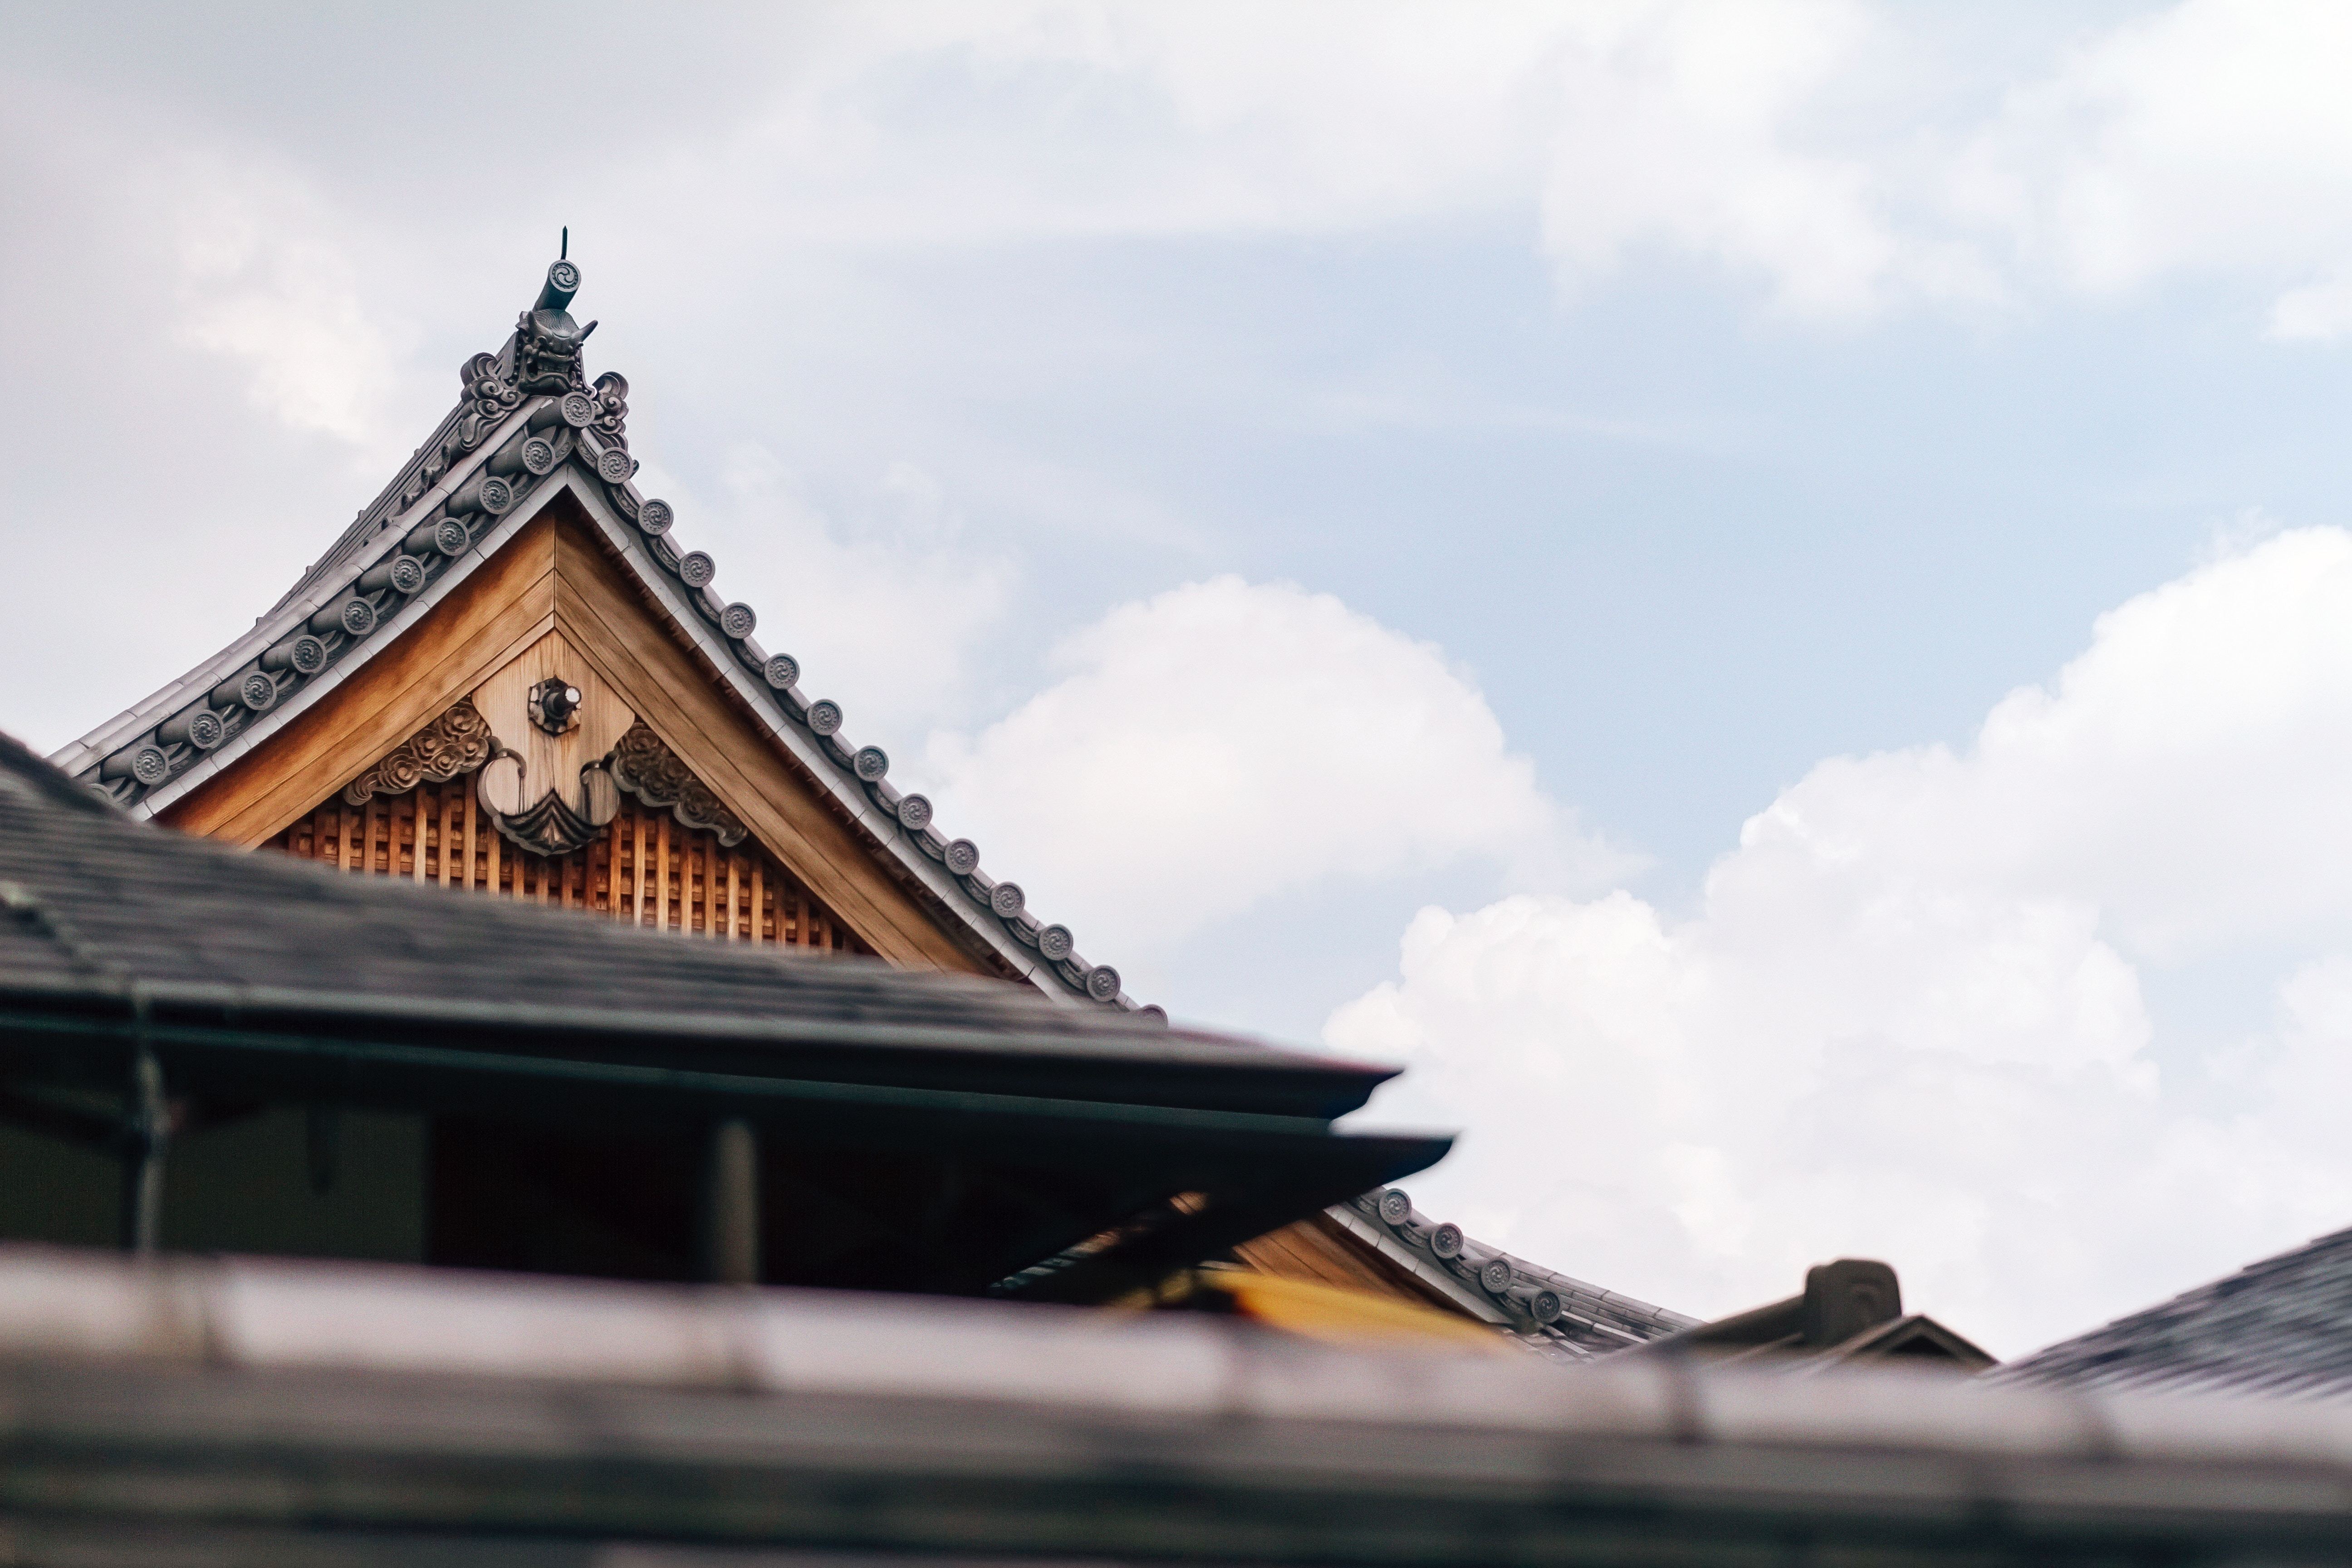 A Backpacker's Guide To Kyoto: The Cultural Heart Of Japan